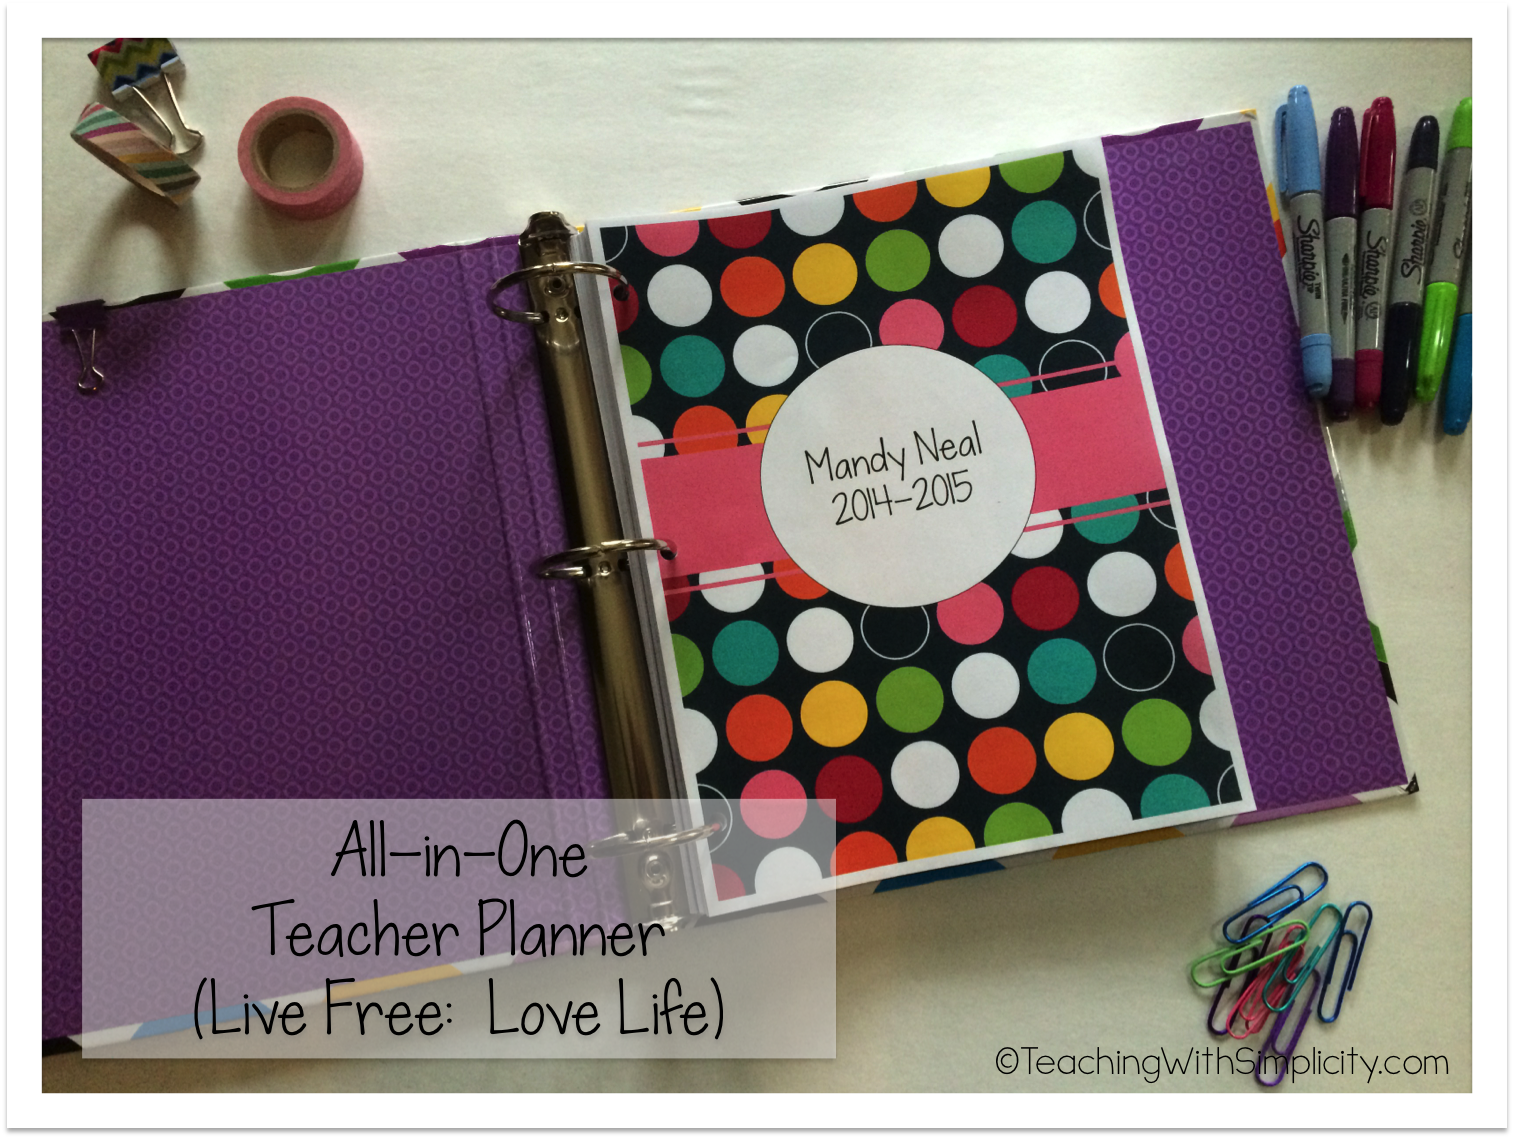 All-in-one planner 9